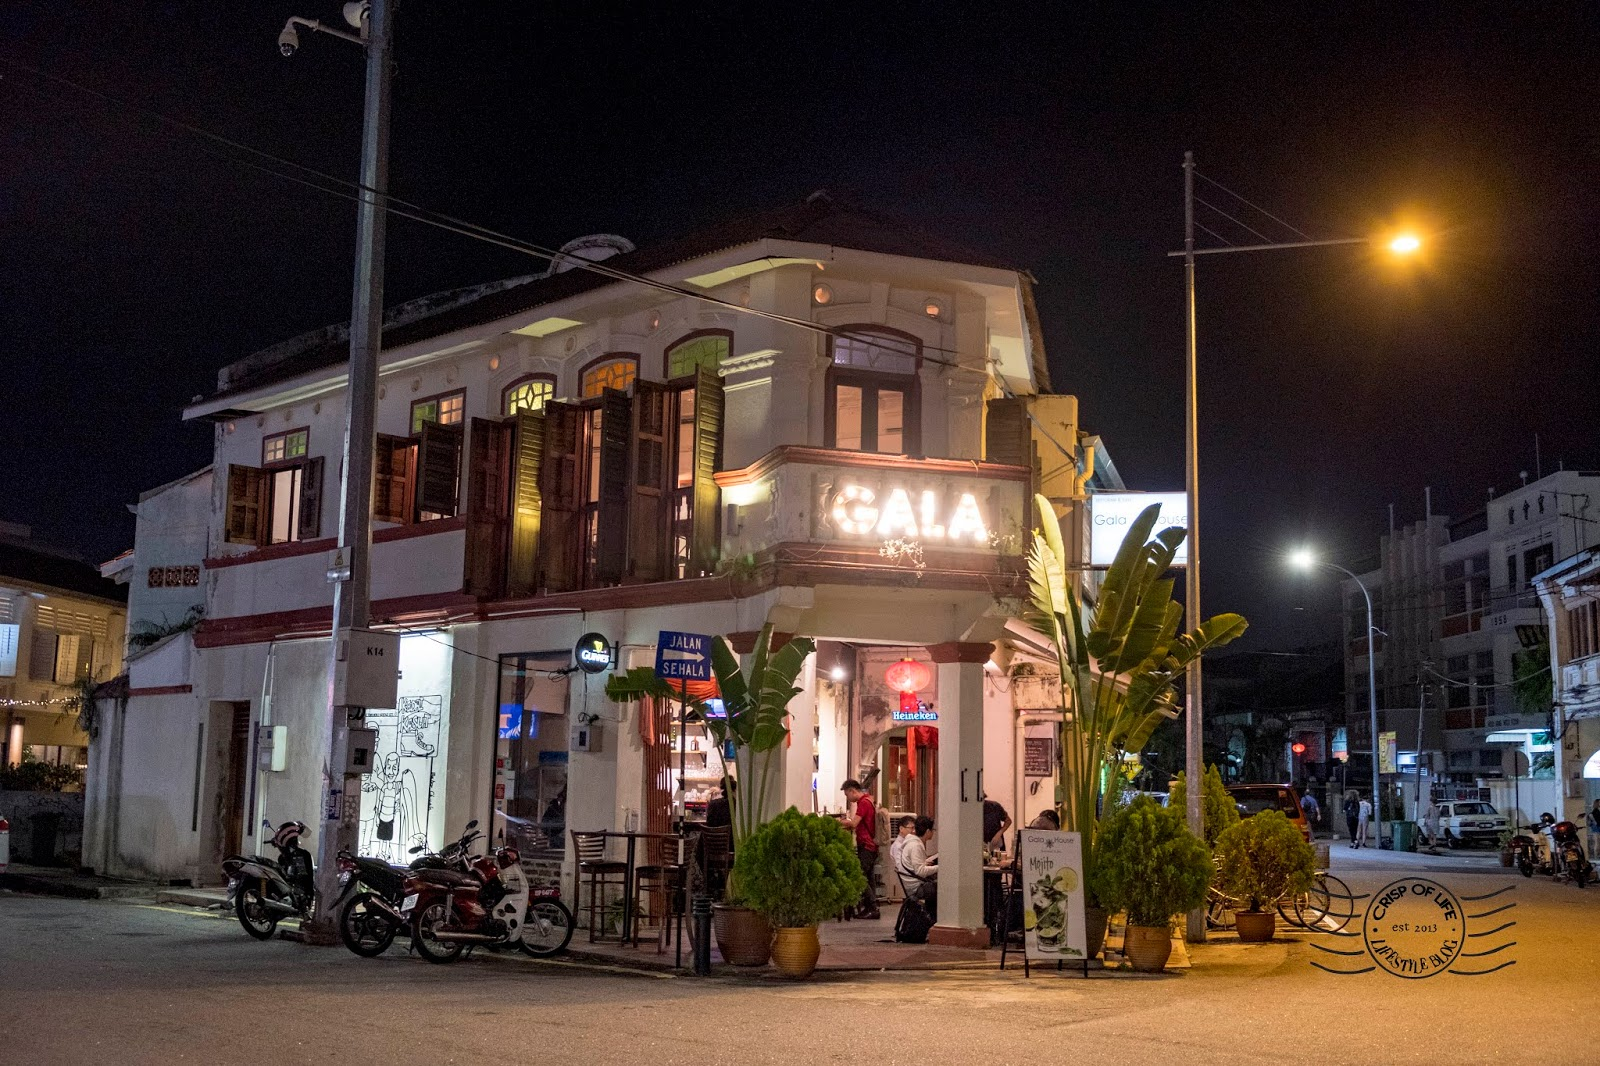 Gala House Restaurant and Bar @ Muntri Street, Georgetown, Penang for beer and Asian Western fusion cuisine.